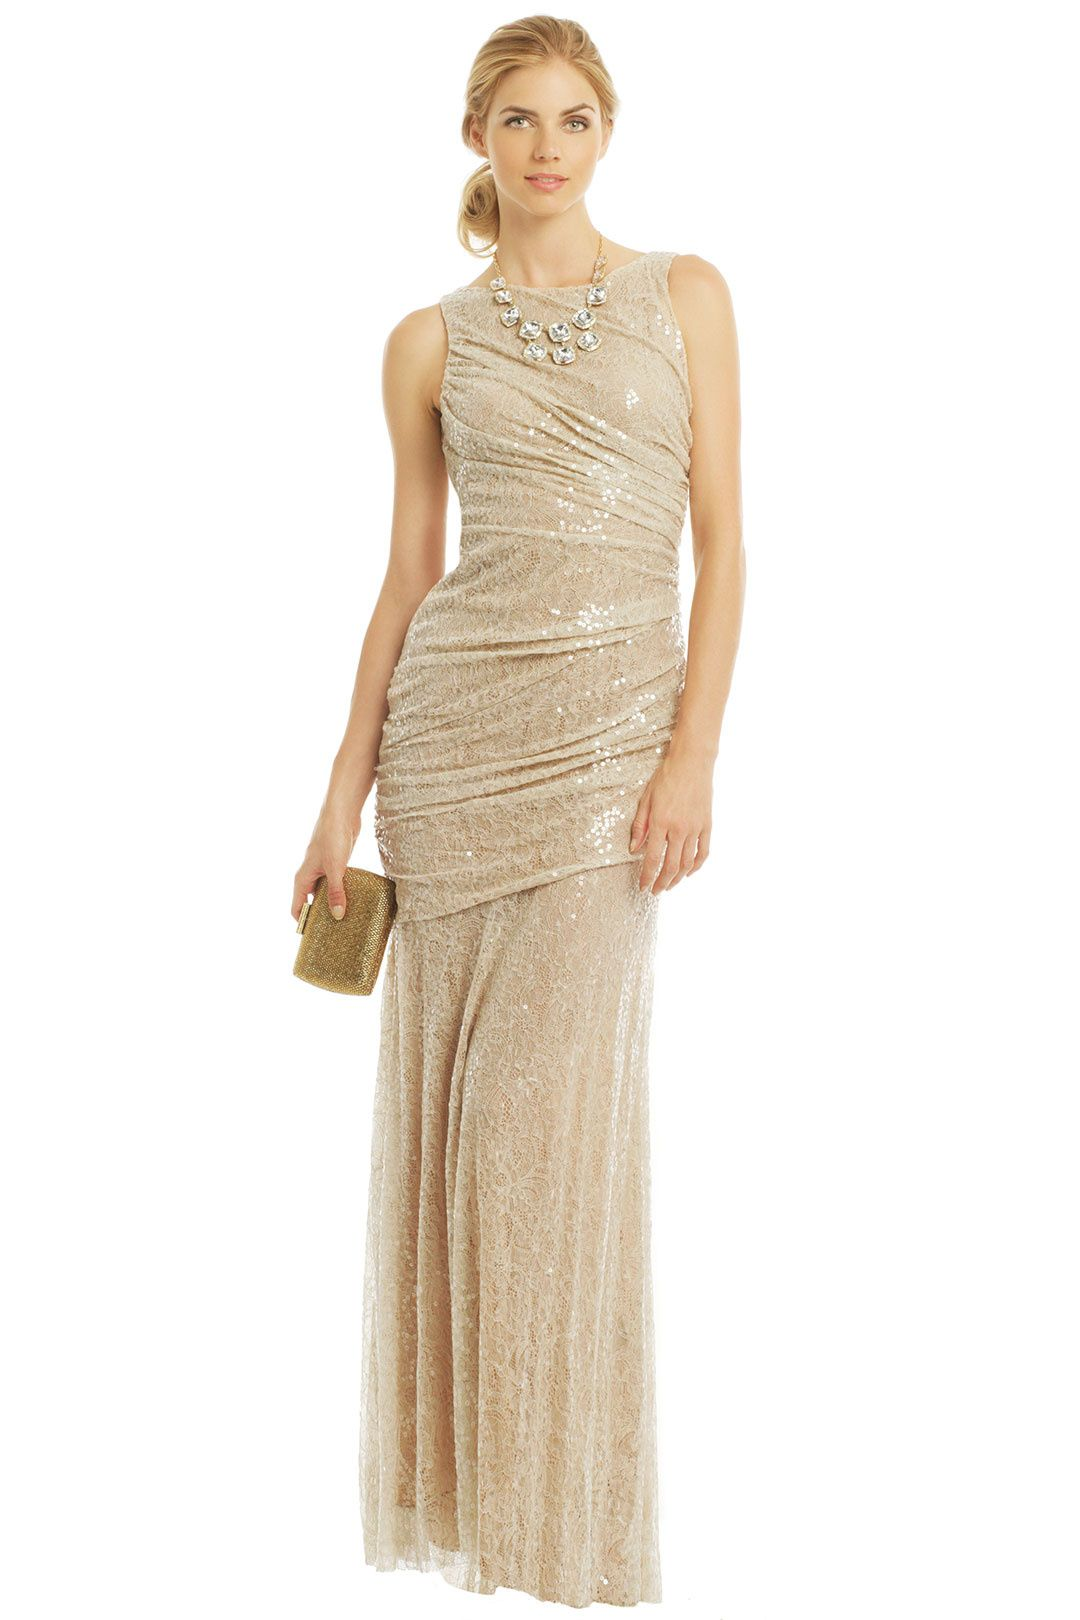 Renting wedding dresses  Beaded Metallic and Sequined Bridesmaid Dresses